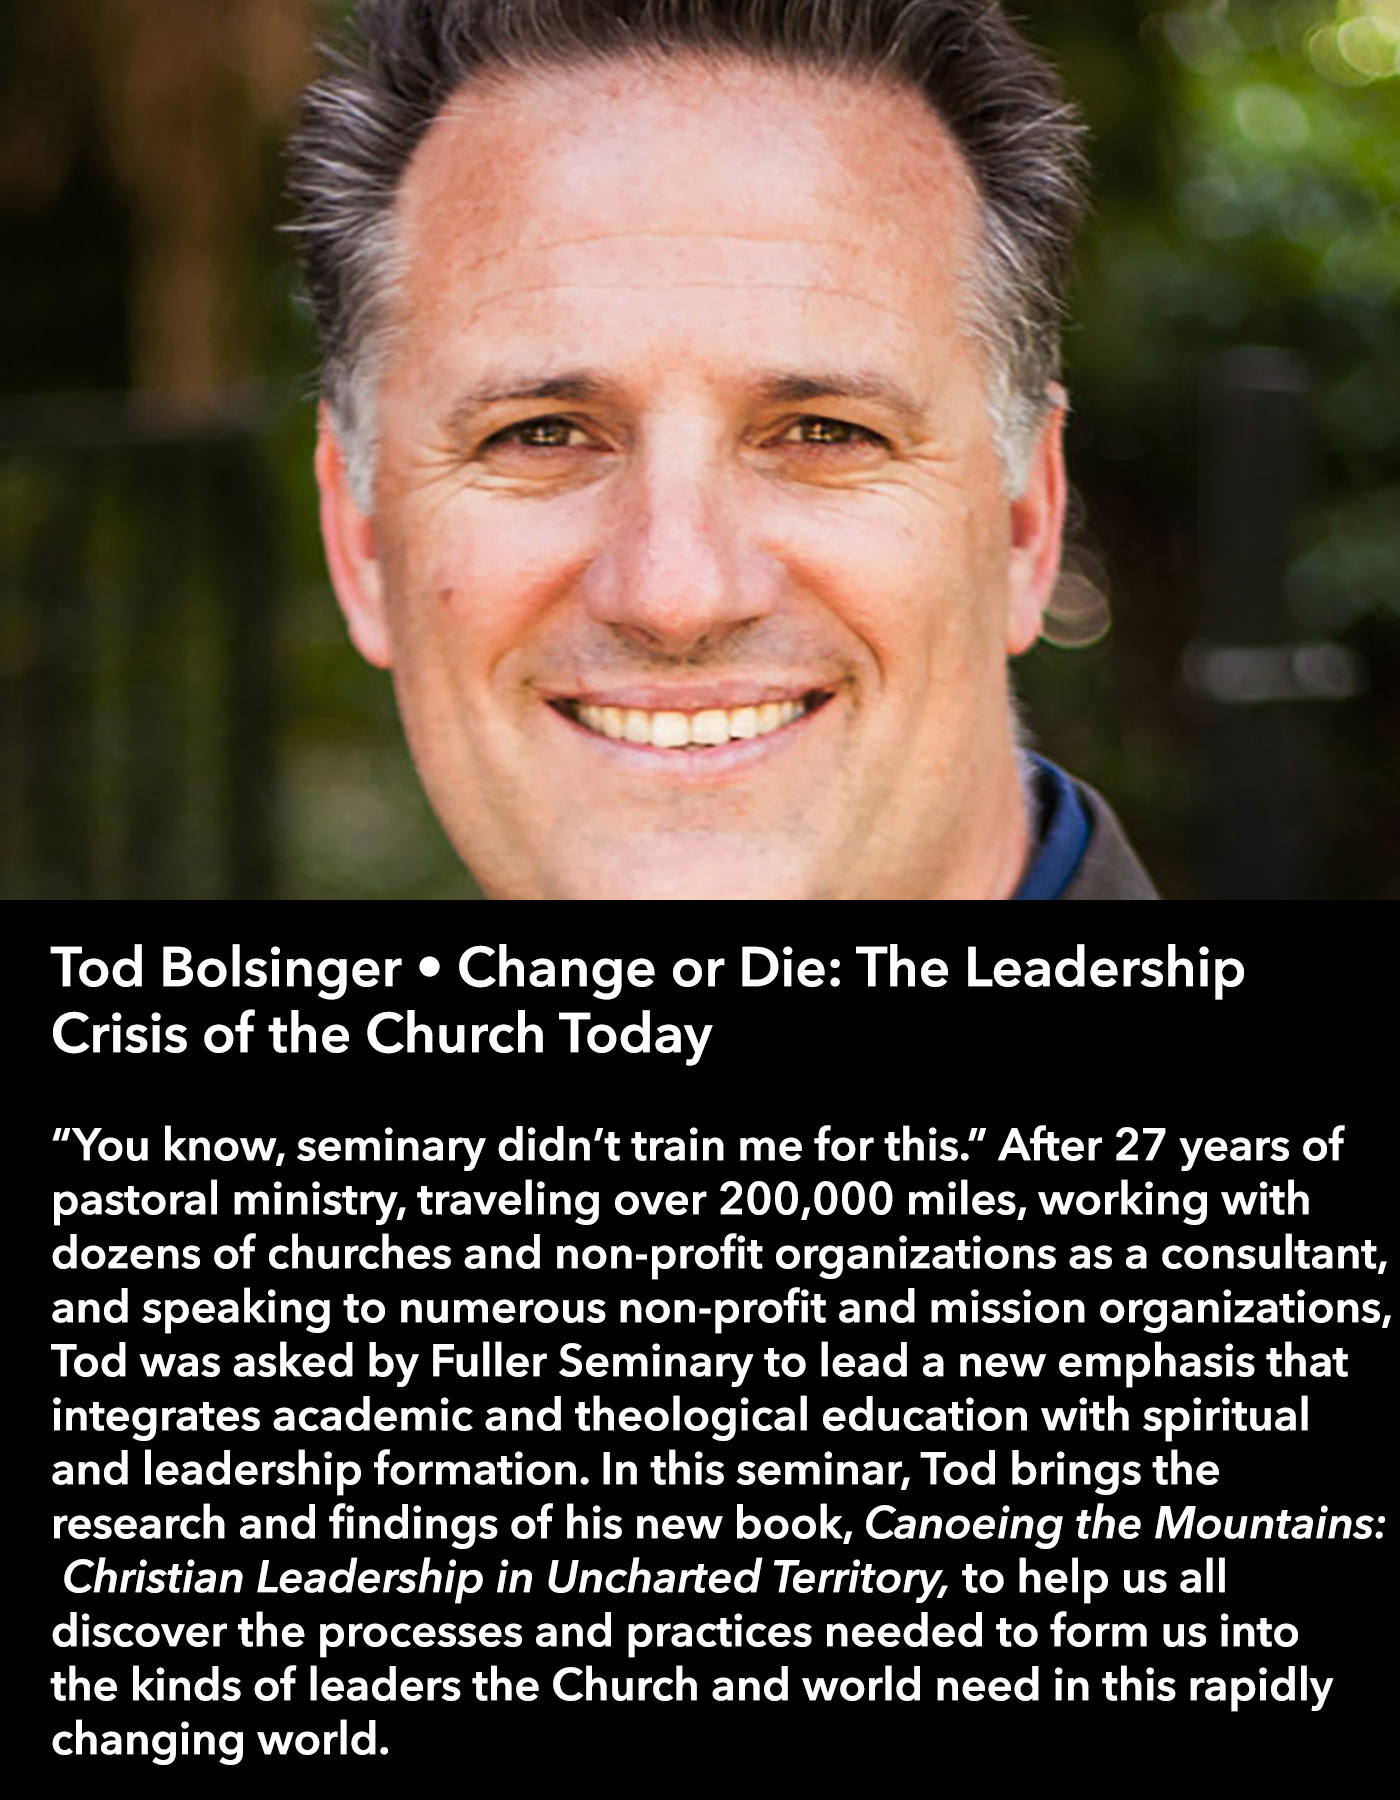 Tod Bolsinger • Change or Die: The Leadership Crisis of the Church Today • Saturday Morning, March 18 • 10:30 – 11:45 am